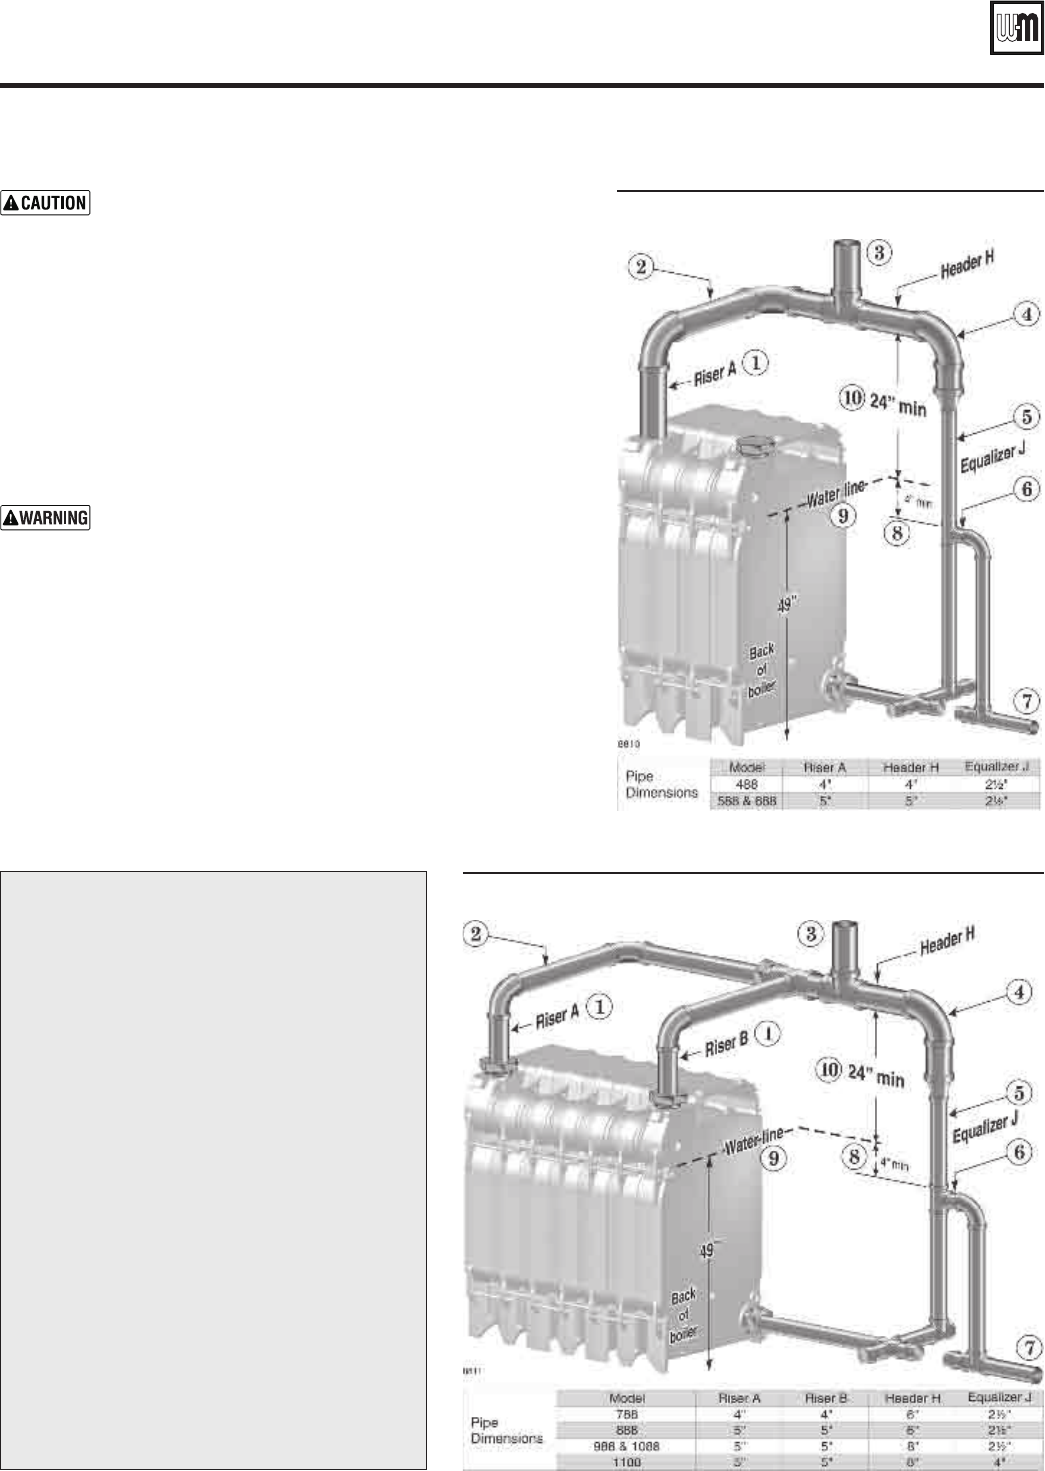 Weil-McLain 88 Steam boiler piping guidelines, Drawing legend & notes